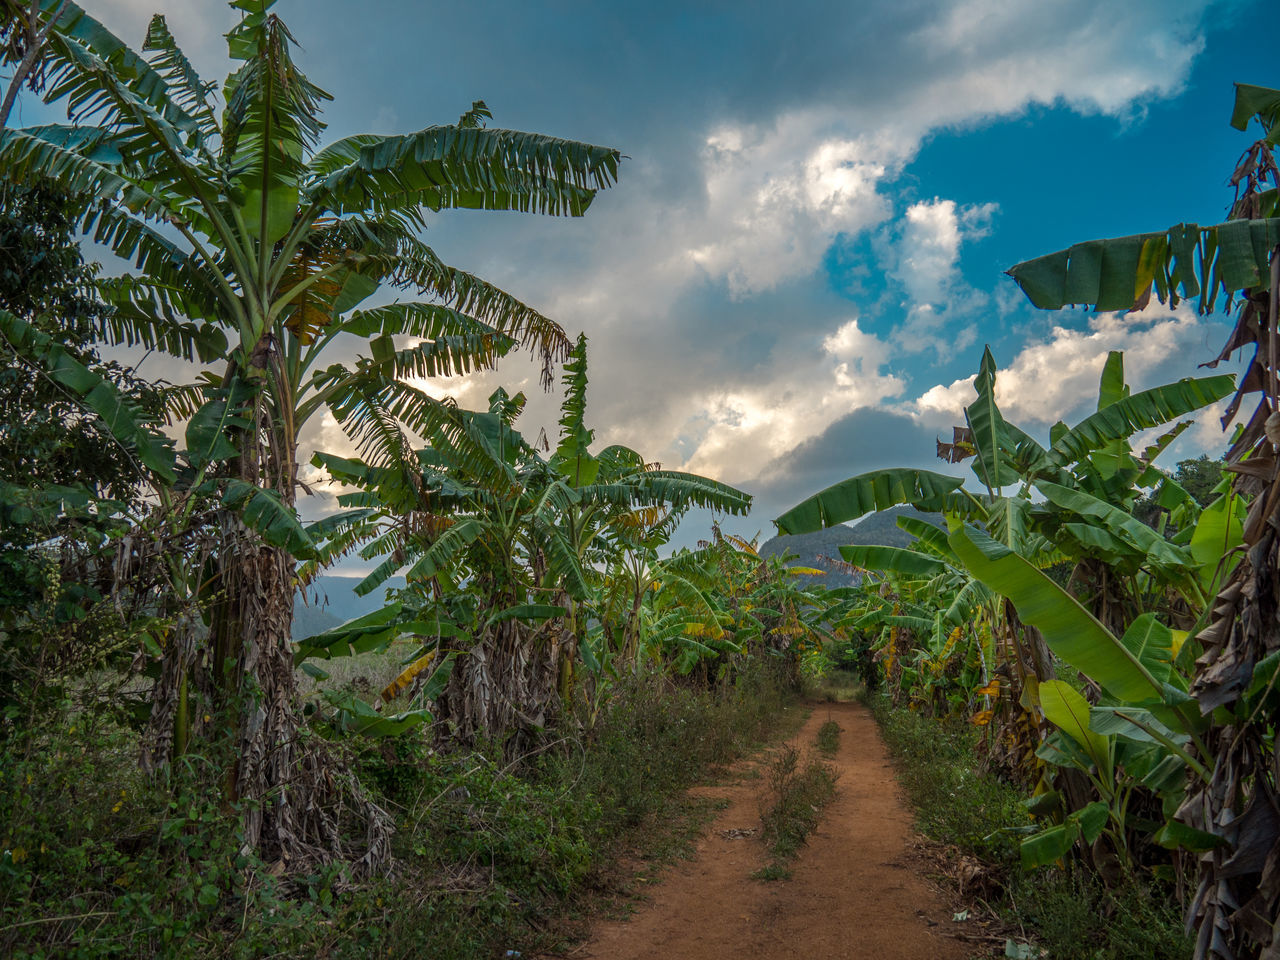 Pathway Amidst Banana Trees At Field Against Sky